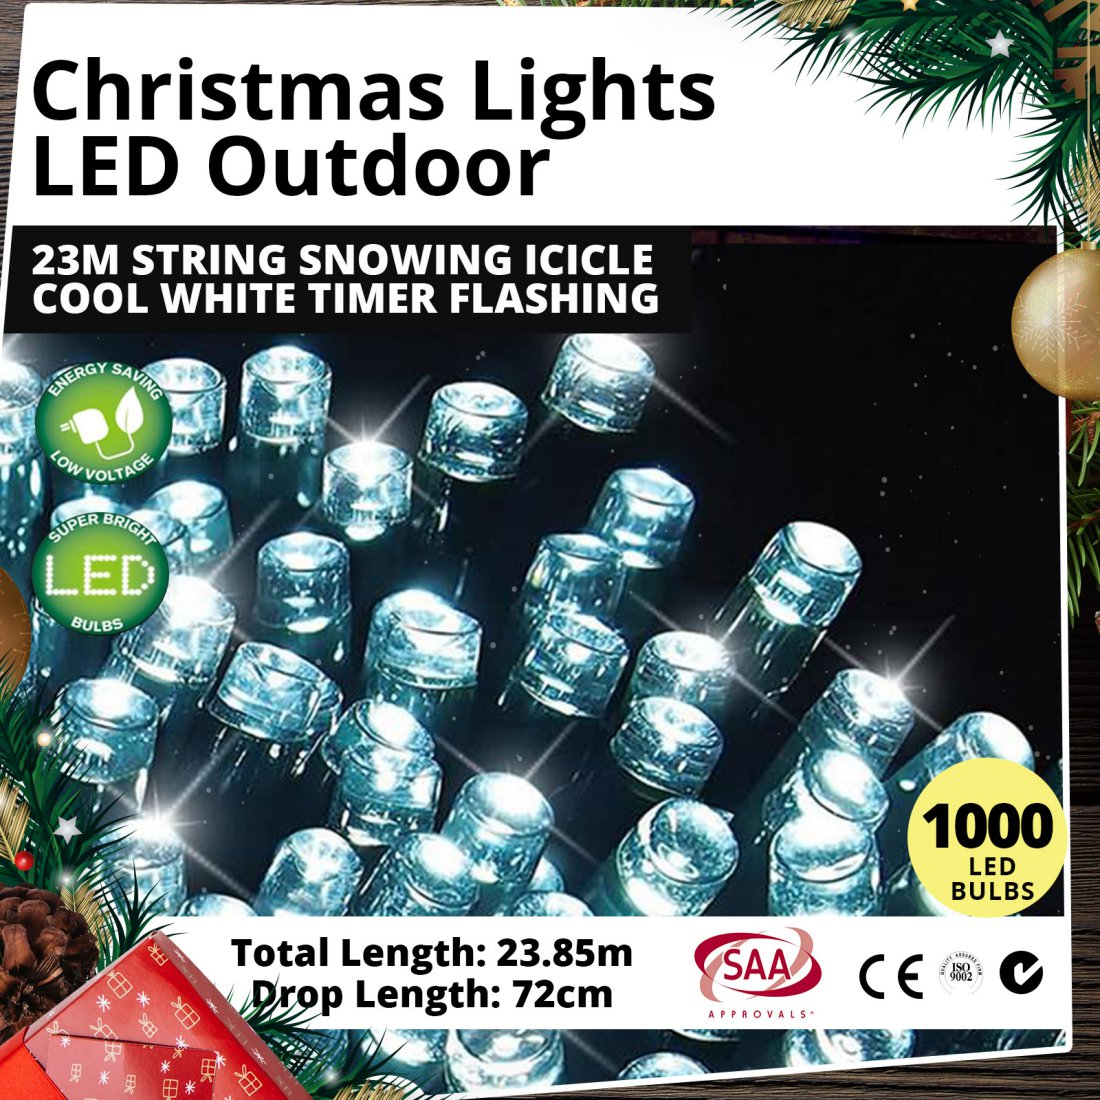 Christmas Lights LED Outdoor 23M String Snowing Icicle Cool White Timer Flashing